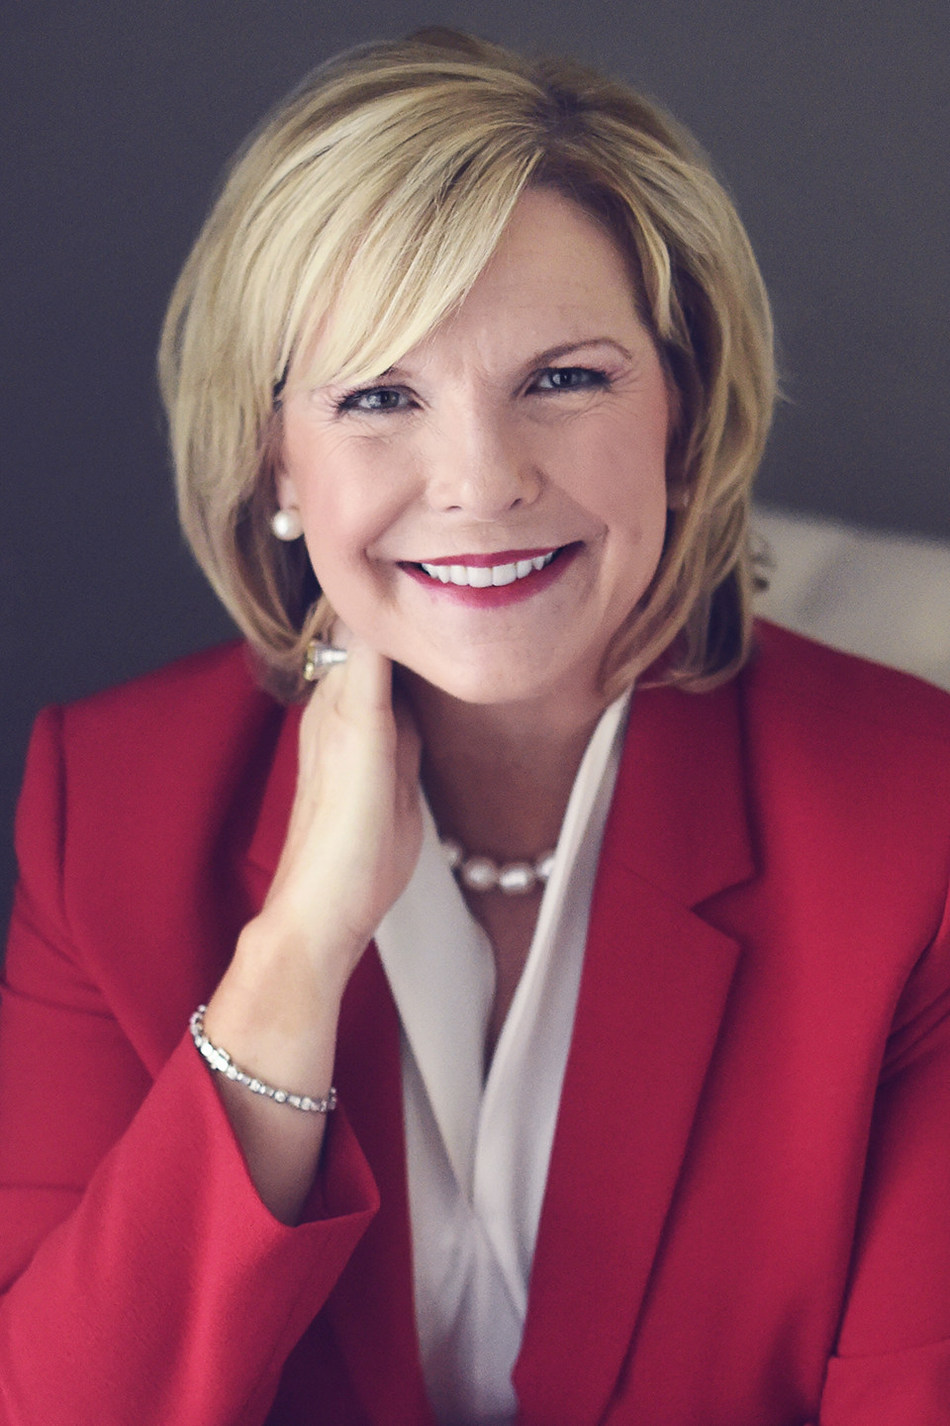 Patricia (Patti) A. Husic, President & CEO of Centric Financial Corporation, Inc. and Centric Bank,  has been selected by American Banker as one of The 25 Most Powerful Women in Banking in 2018 for the fourth consecutive year.